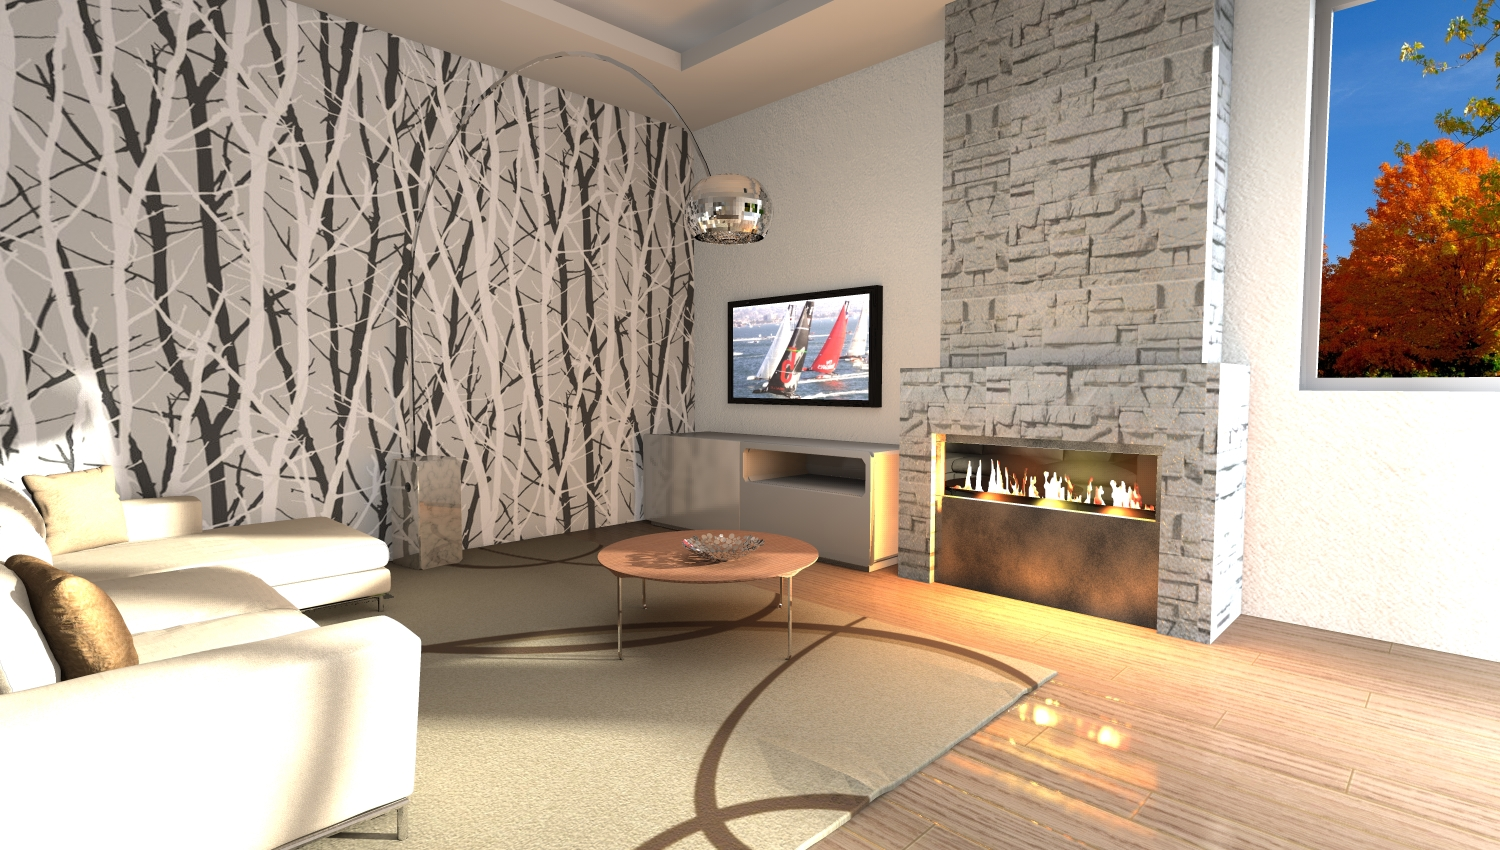 Interior design progetto arredamento casa for Siti di interior design